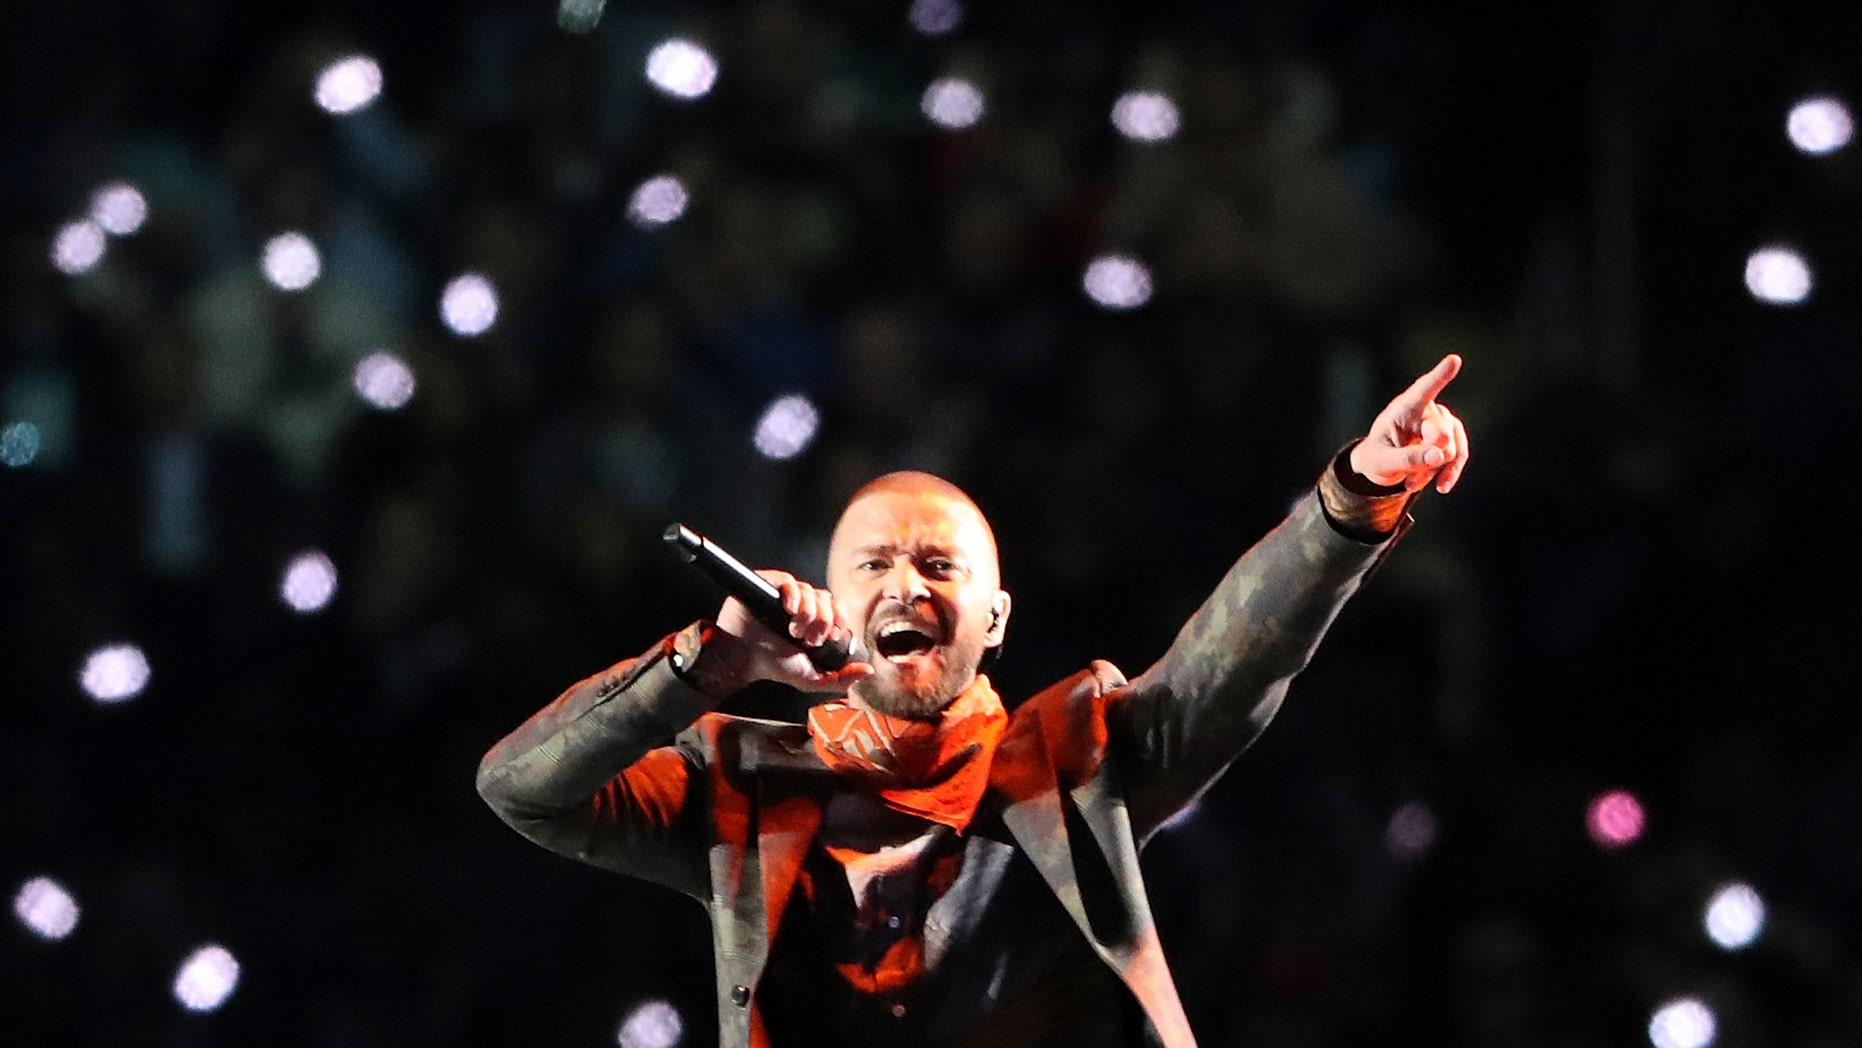 NFL Football - Philadelphia Eagles v New England Patriots - Super Bowl LII Halftime Show - U.S. Bank Stadium, Minneapolis, Minnesota, U.S. - February 4, 2018. Justin Timberlake performs during the halftime show. REUTERS/Chris Wattie - HP1EE2504YX40